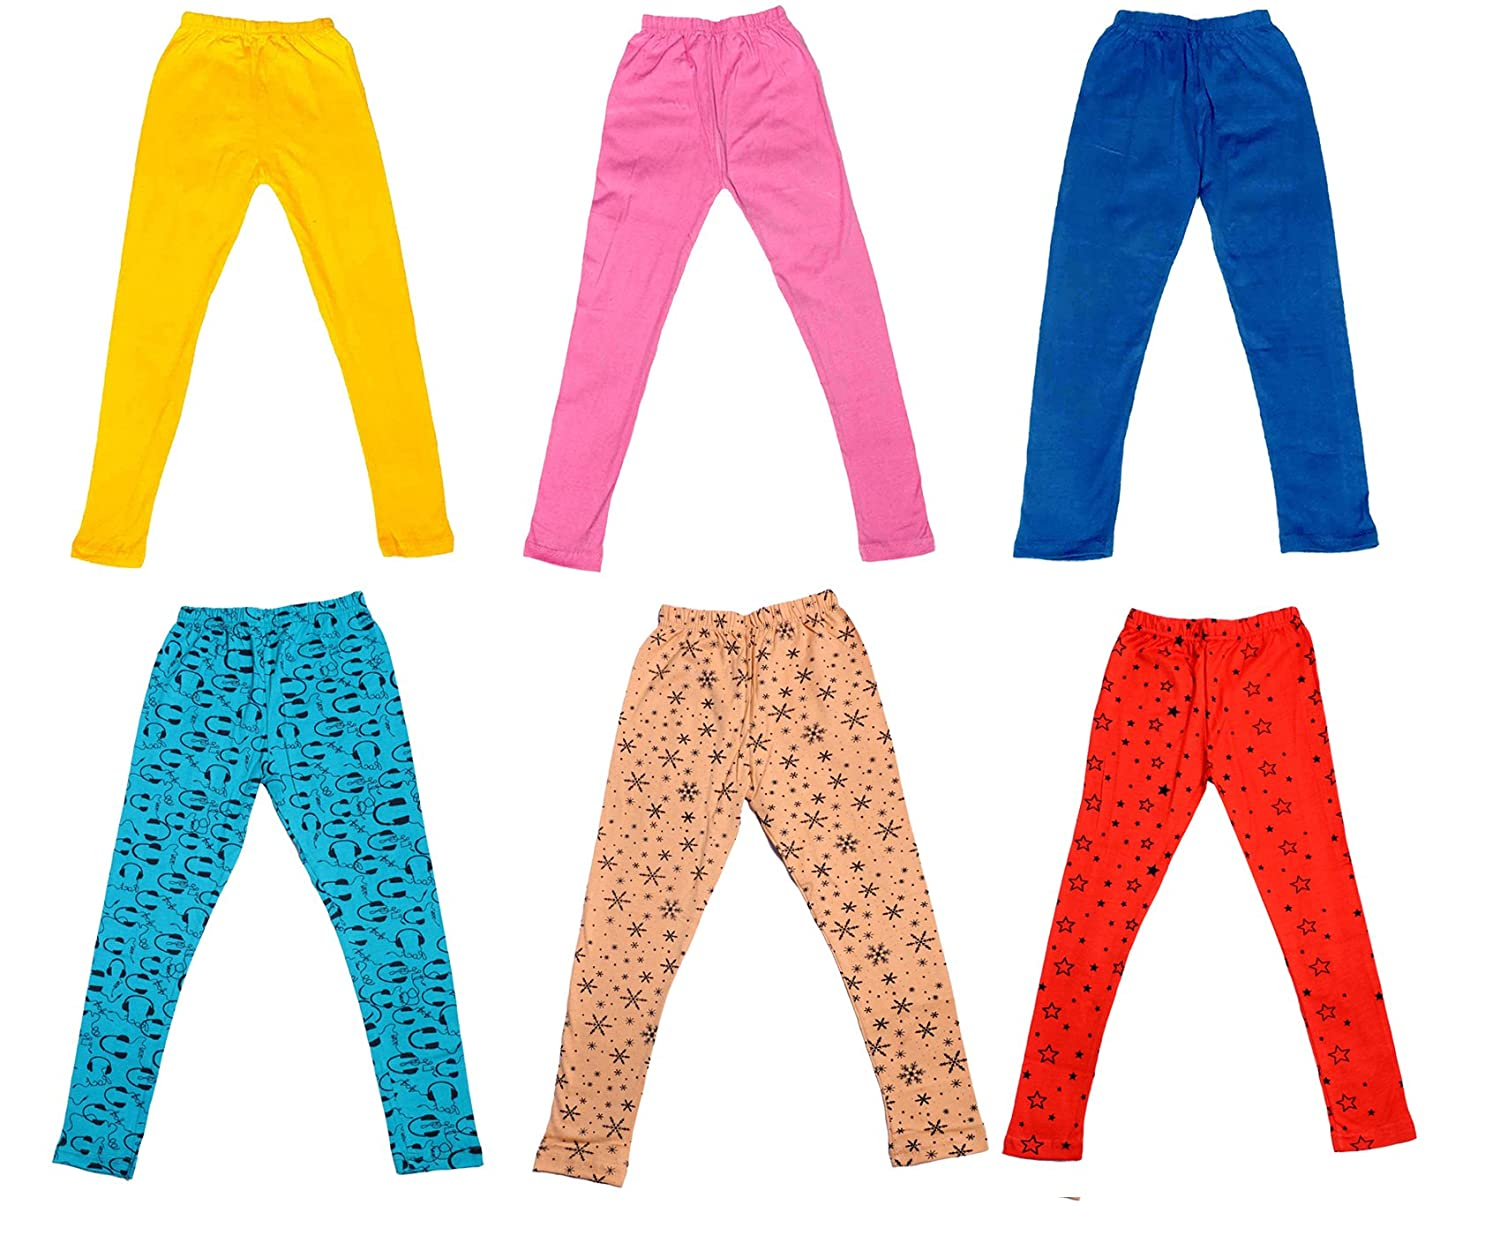 and 3 Cotton Printed Legging Pants Indistar Girls 3 Cotton Solid Legging Pants Pack Of 6 /_Multicolor/_Size-4-5 Years/_714070809161719-IW-P6-26